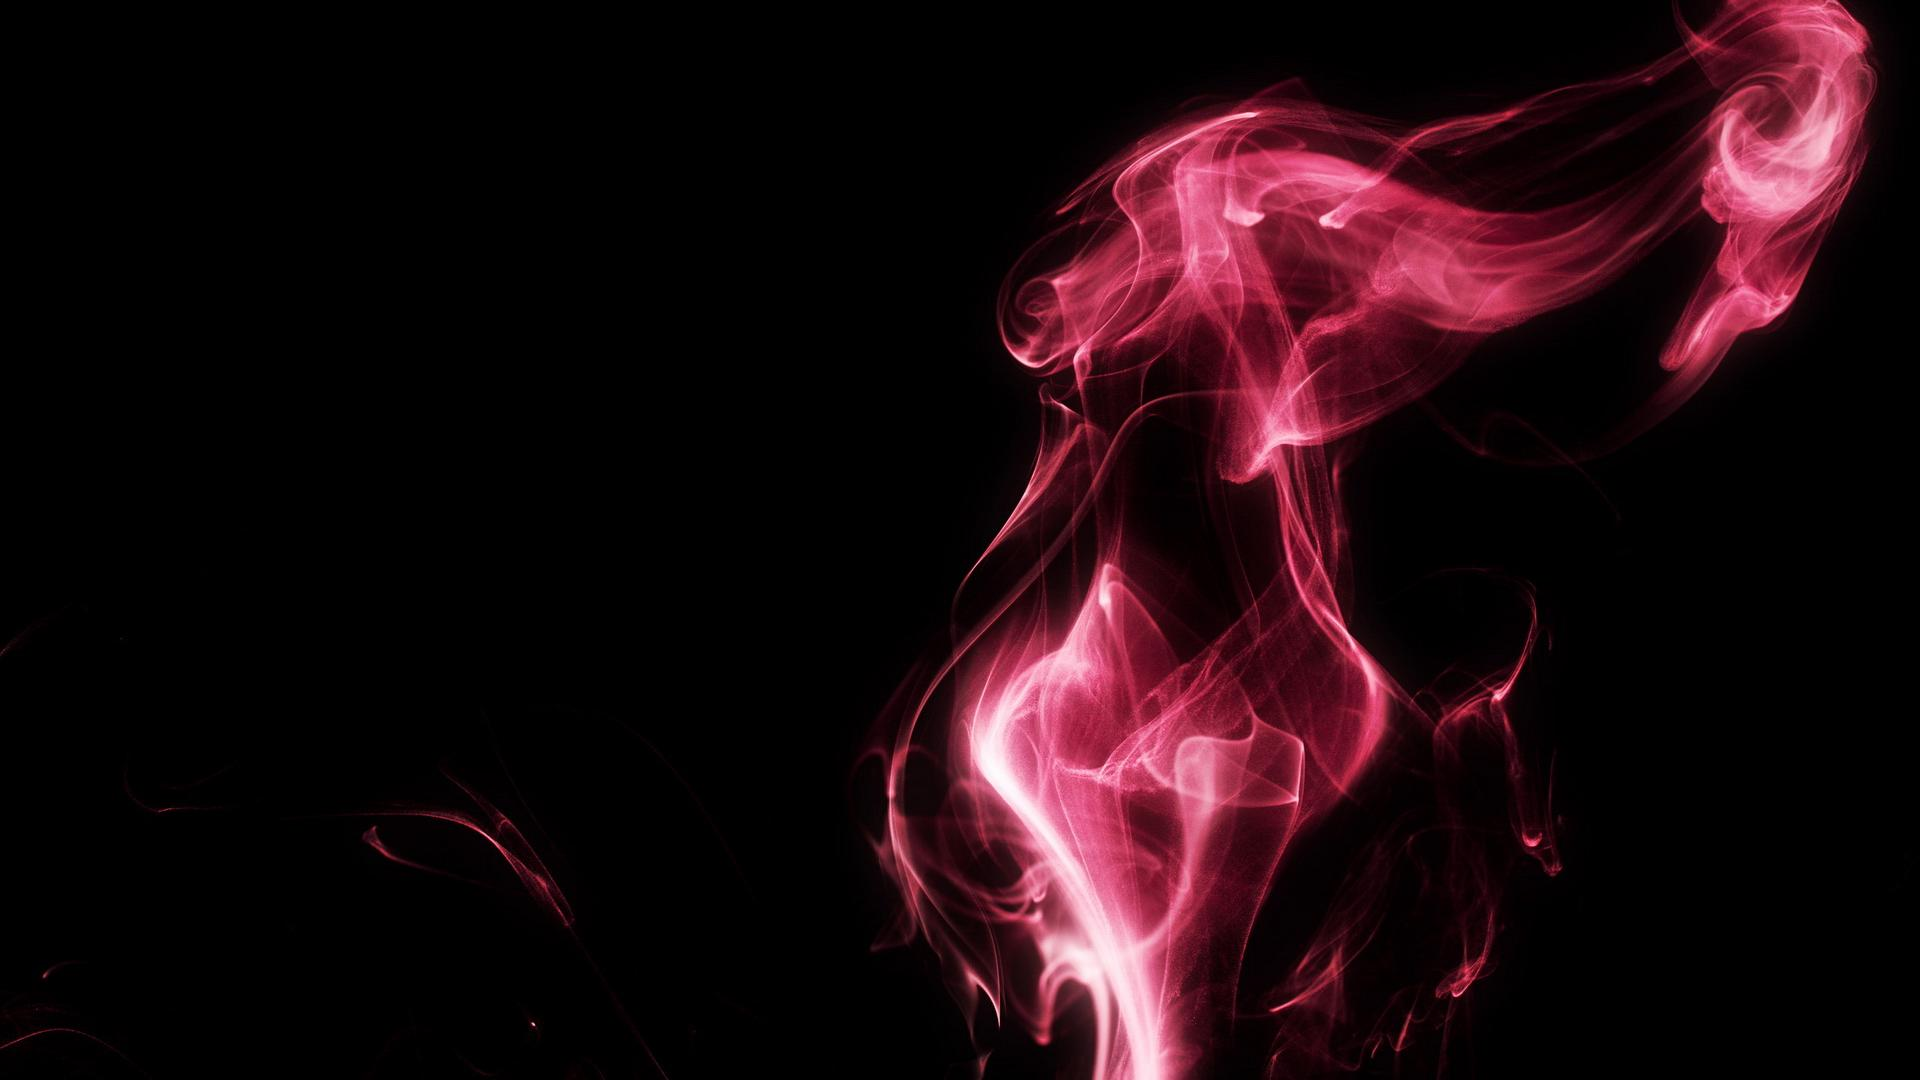 backgrounds wallpaper flame abstract images red 1920x1080 1920x1080